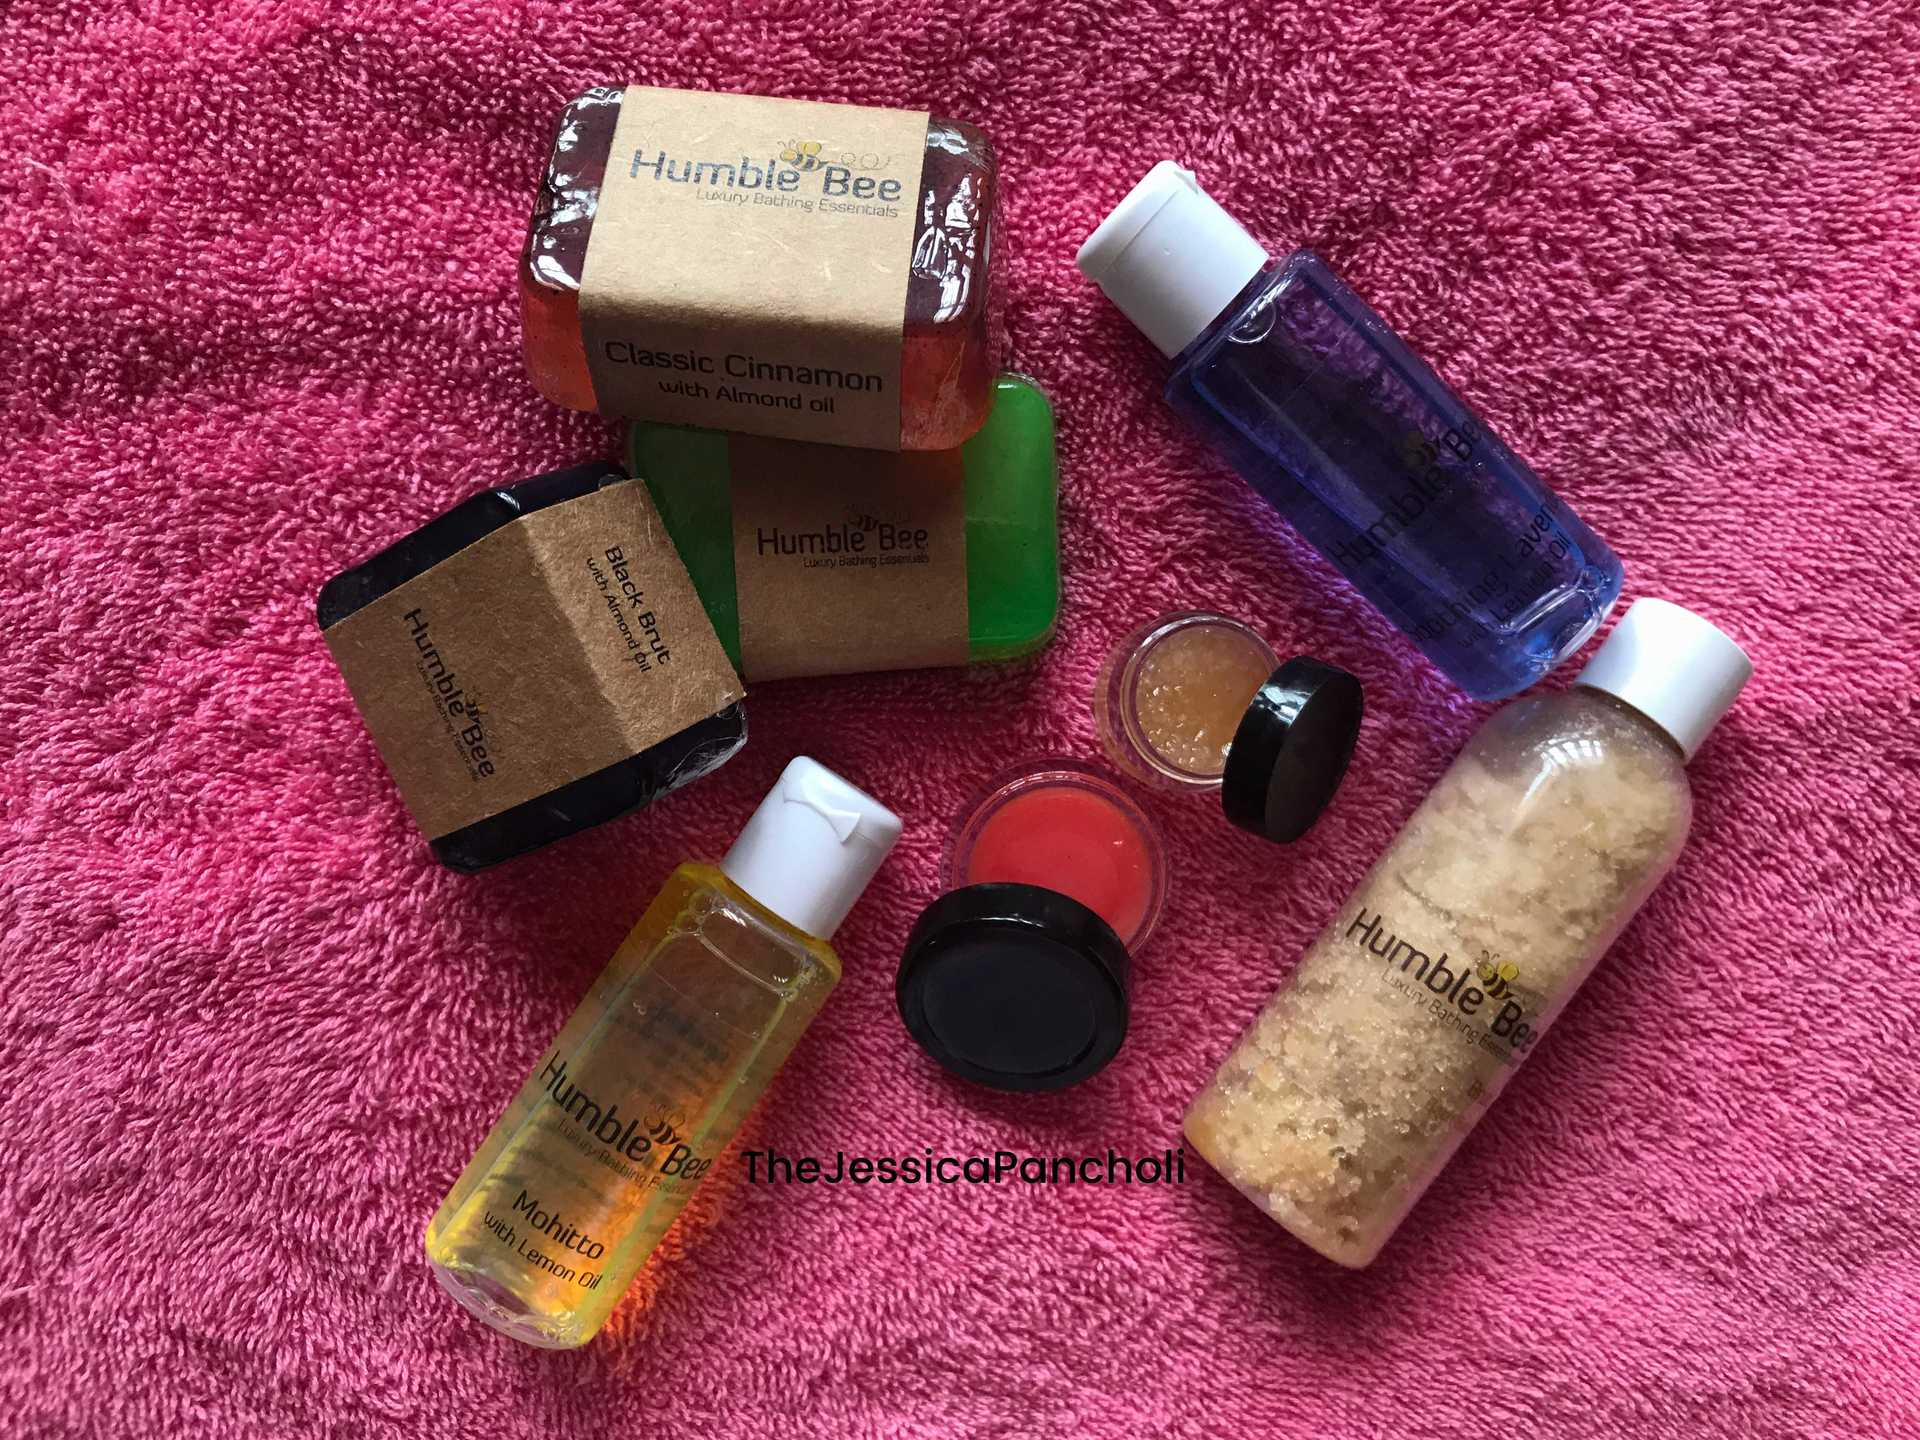 Humble Bee - Luxury Bathing Essentials// Review image